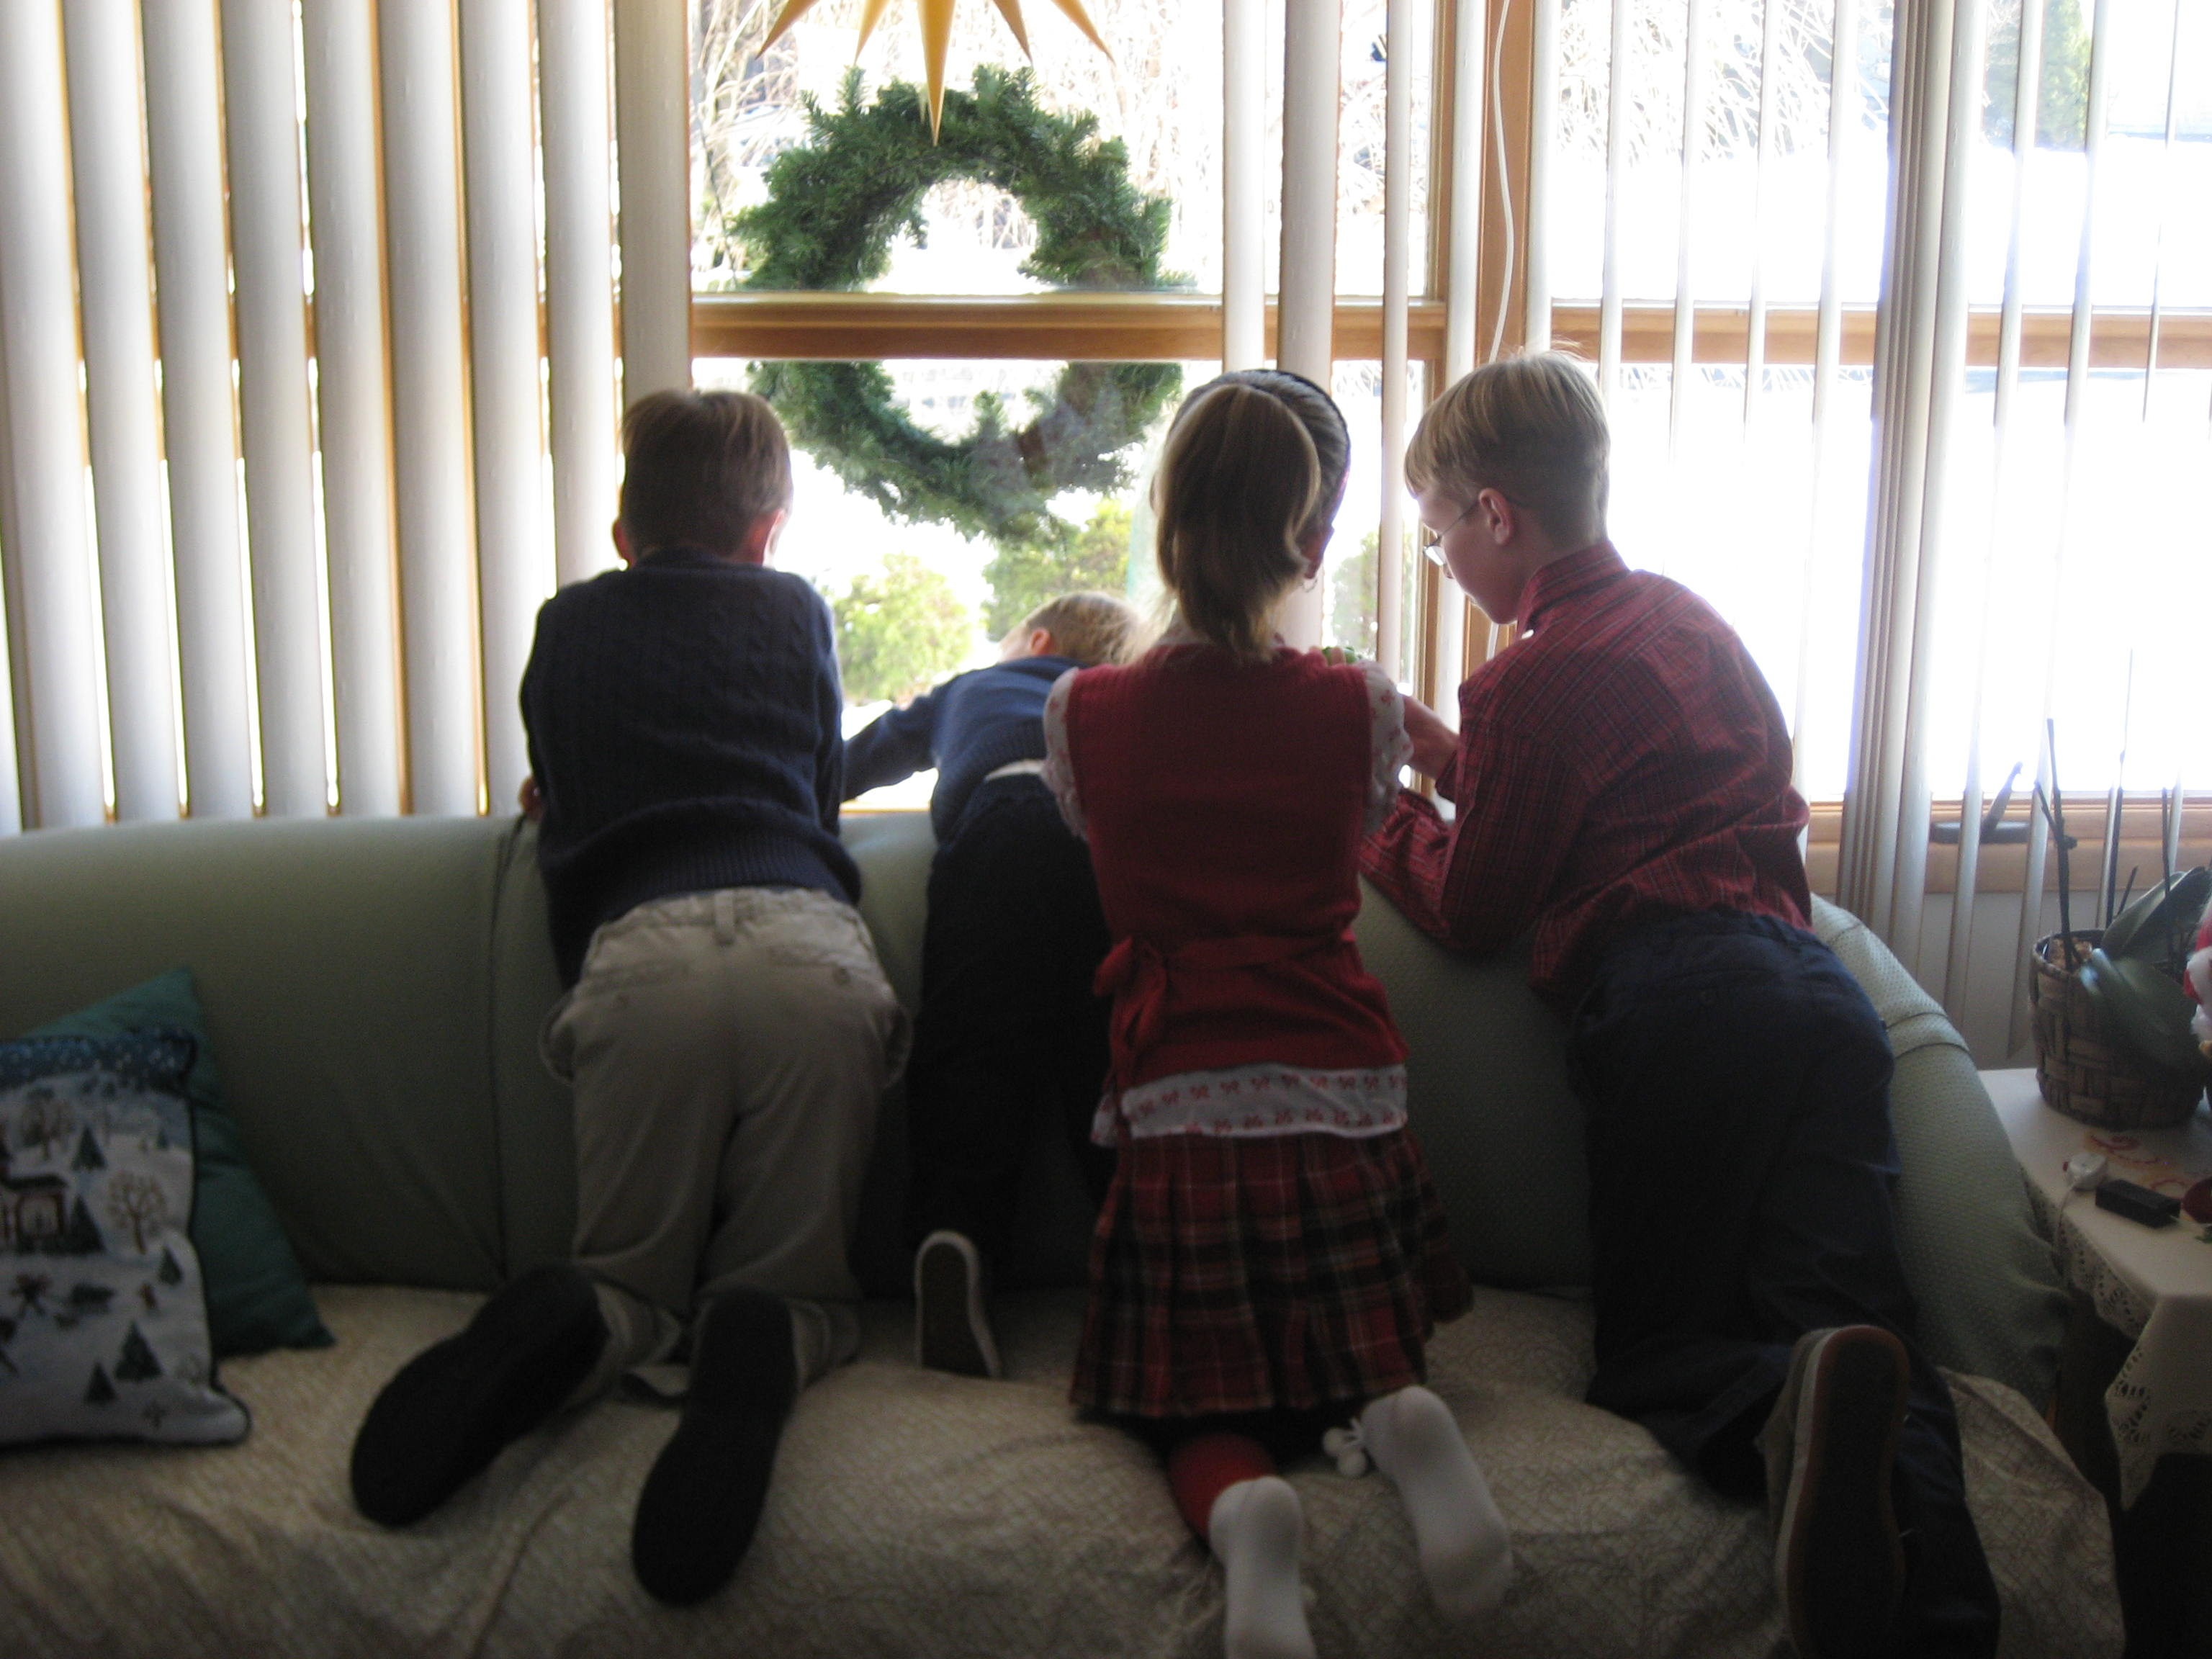 """I call this one """"Waiting for Santa,"""" because """"Get your feet off of Omi's couch"""" doesn't have the same holiday spirit."""